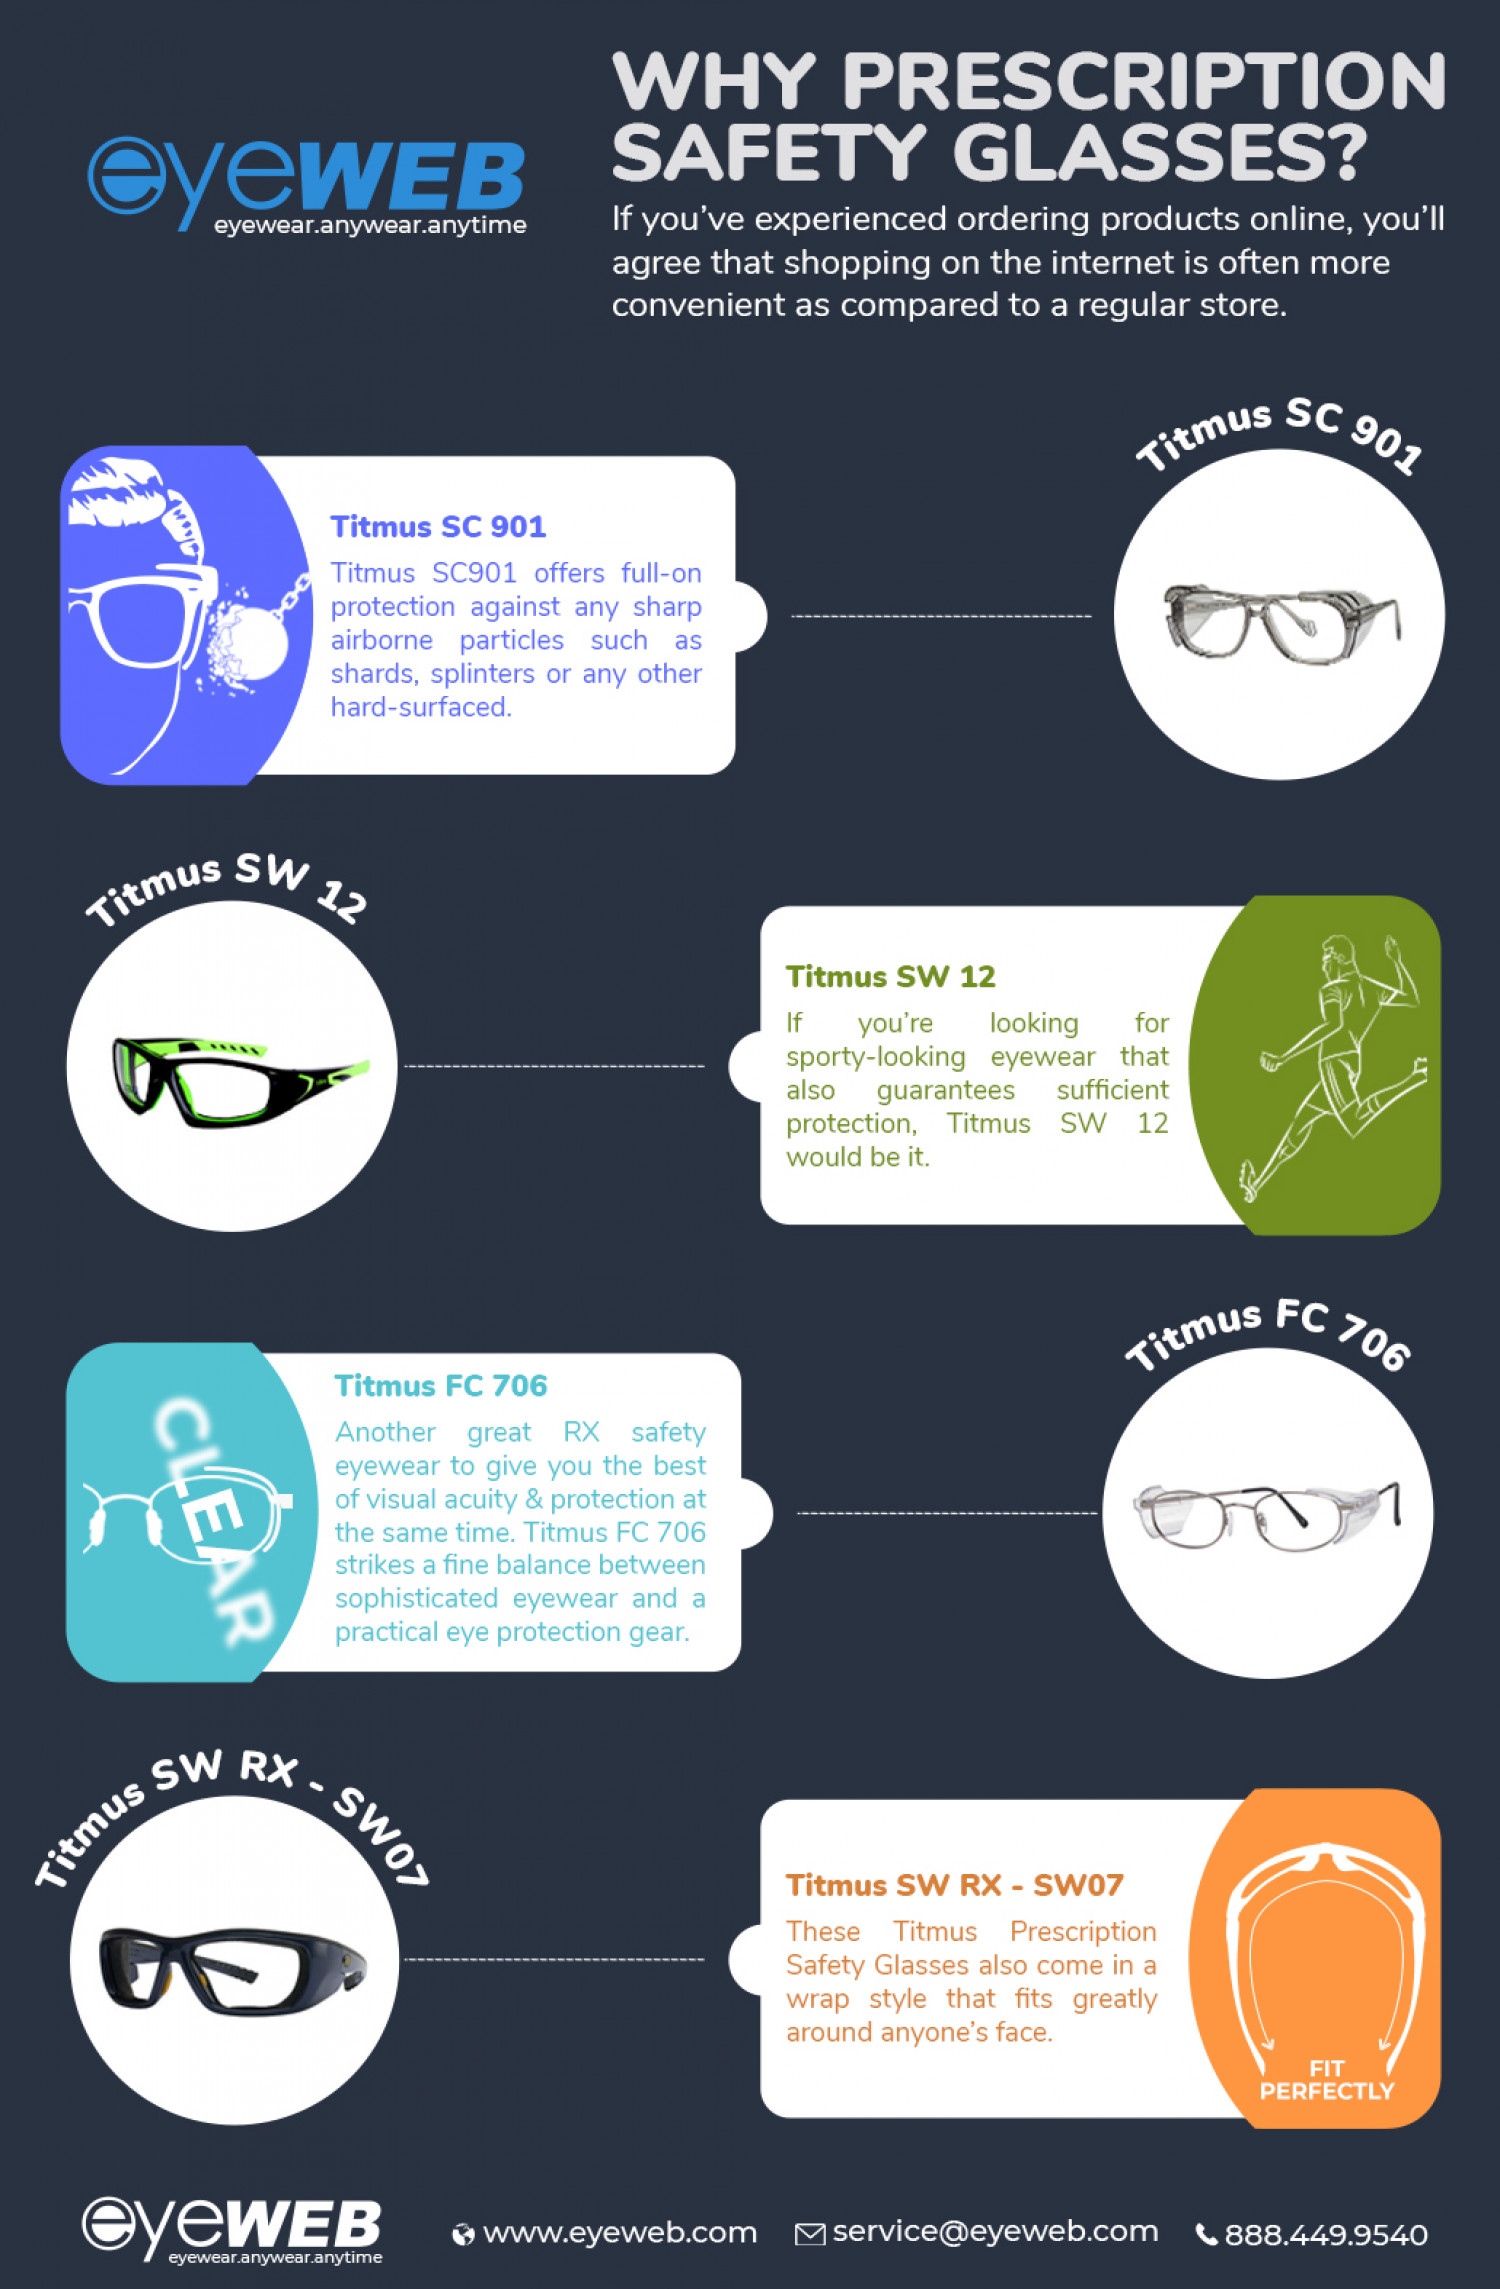 Why Prescription Safety Glasses? Infographic